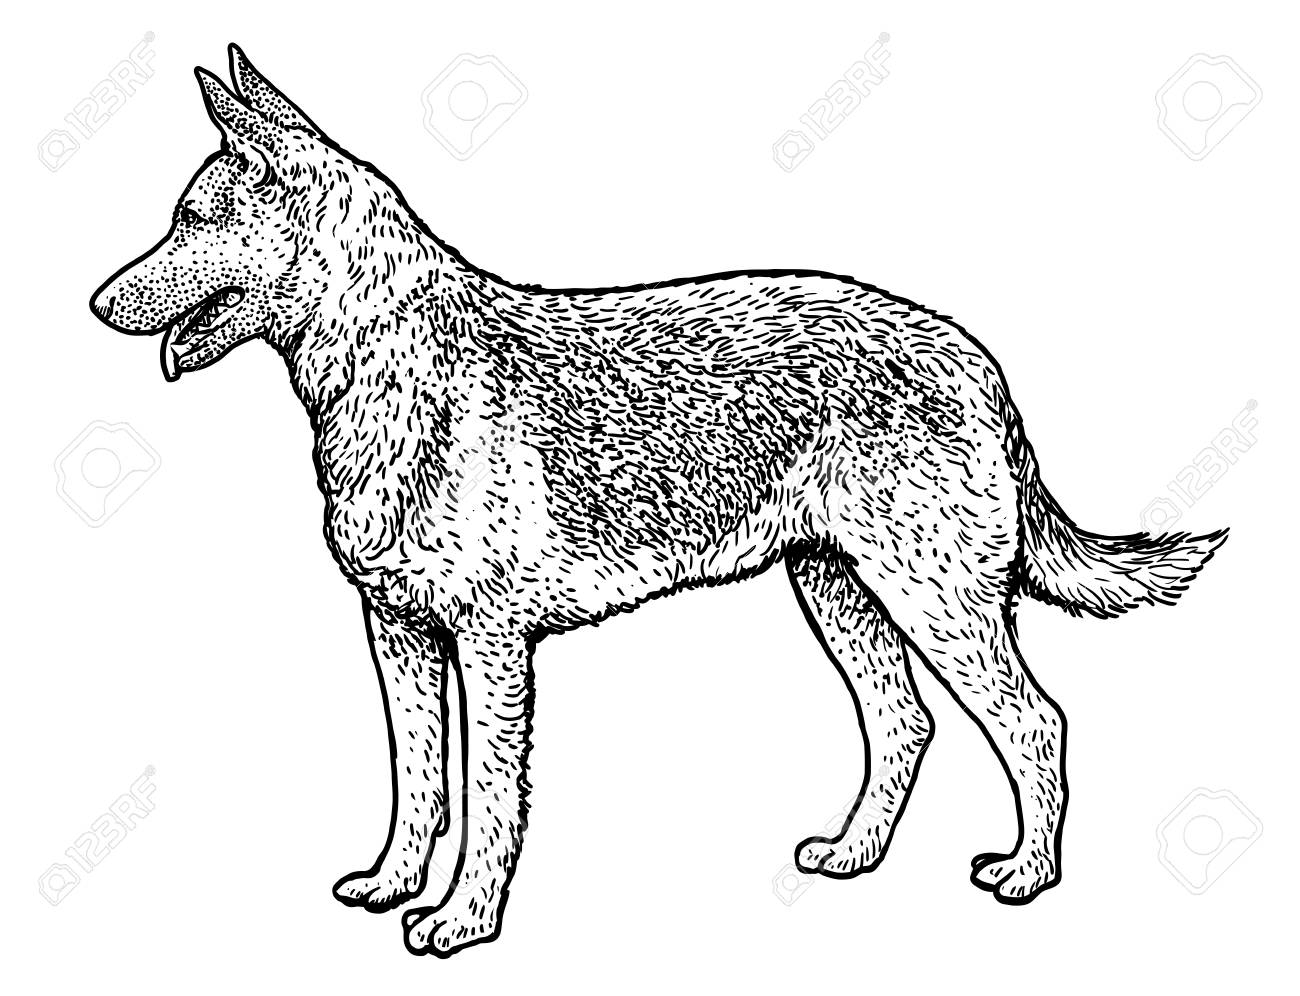 German Shepherd Illustration Drawing Engraving Ink Line Art Royalty Free Cliparts Vectors And Stock Illustration Image 95974350